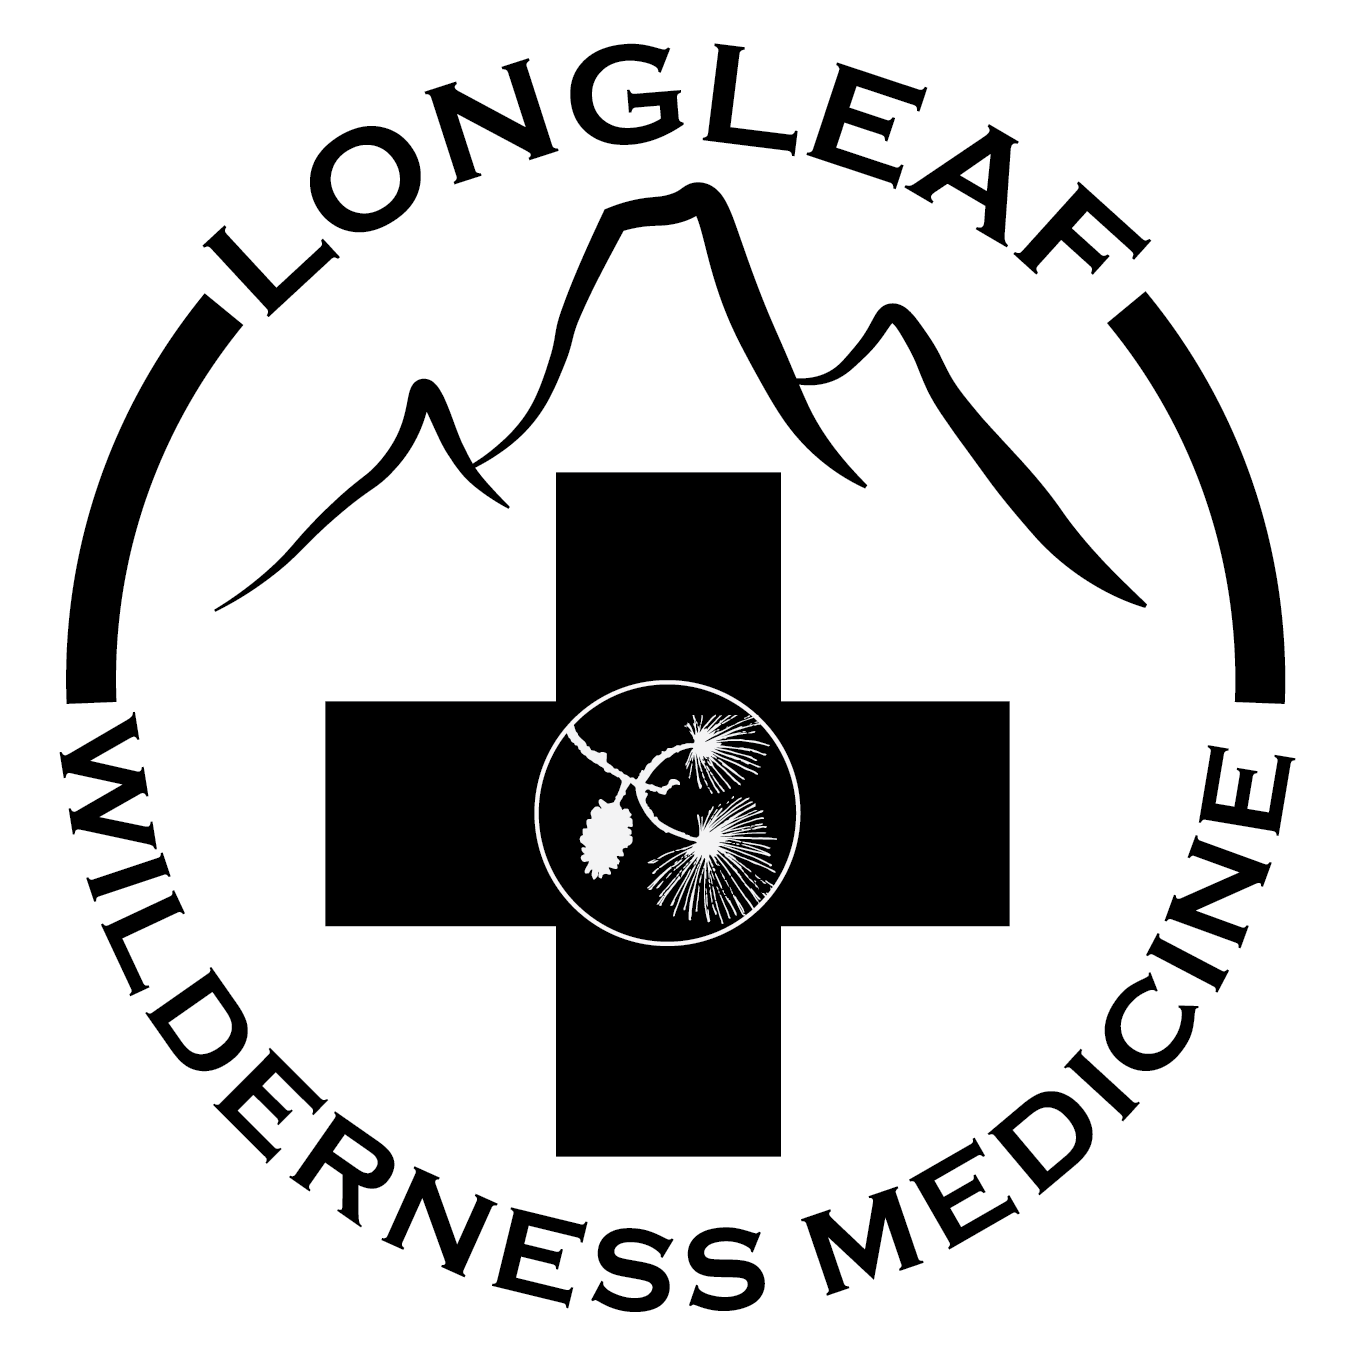 Longleaf Wilderness Medicine log